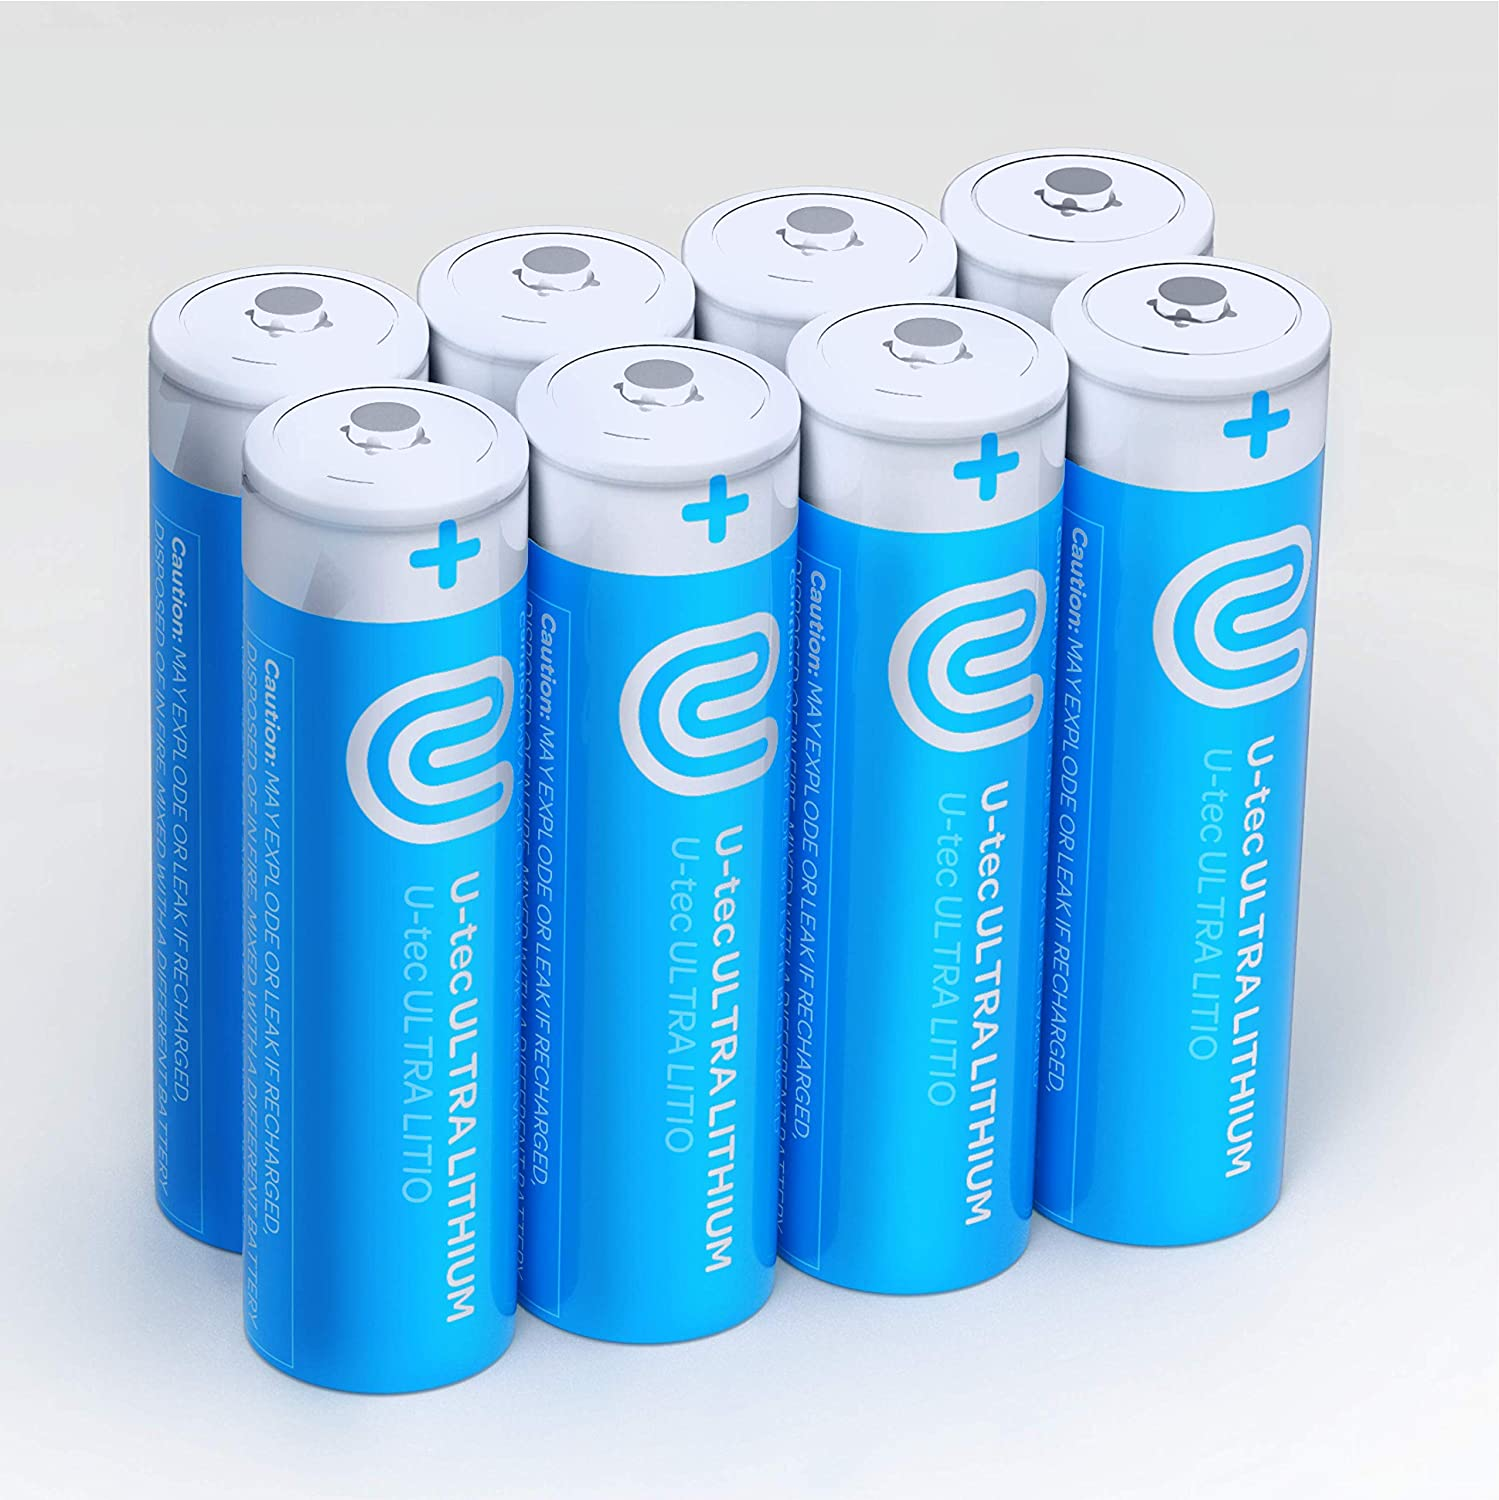 U-tec AA 40% OFF Cheap Manufacturer regenerated product Sale Ultra Lithium Battery Pack 3000mAh of 1.5V 8 Longes